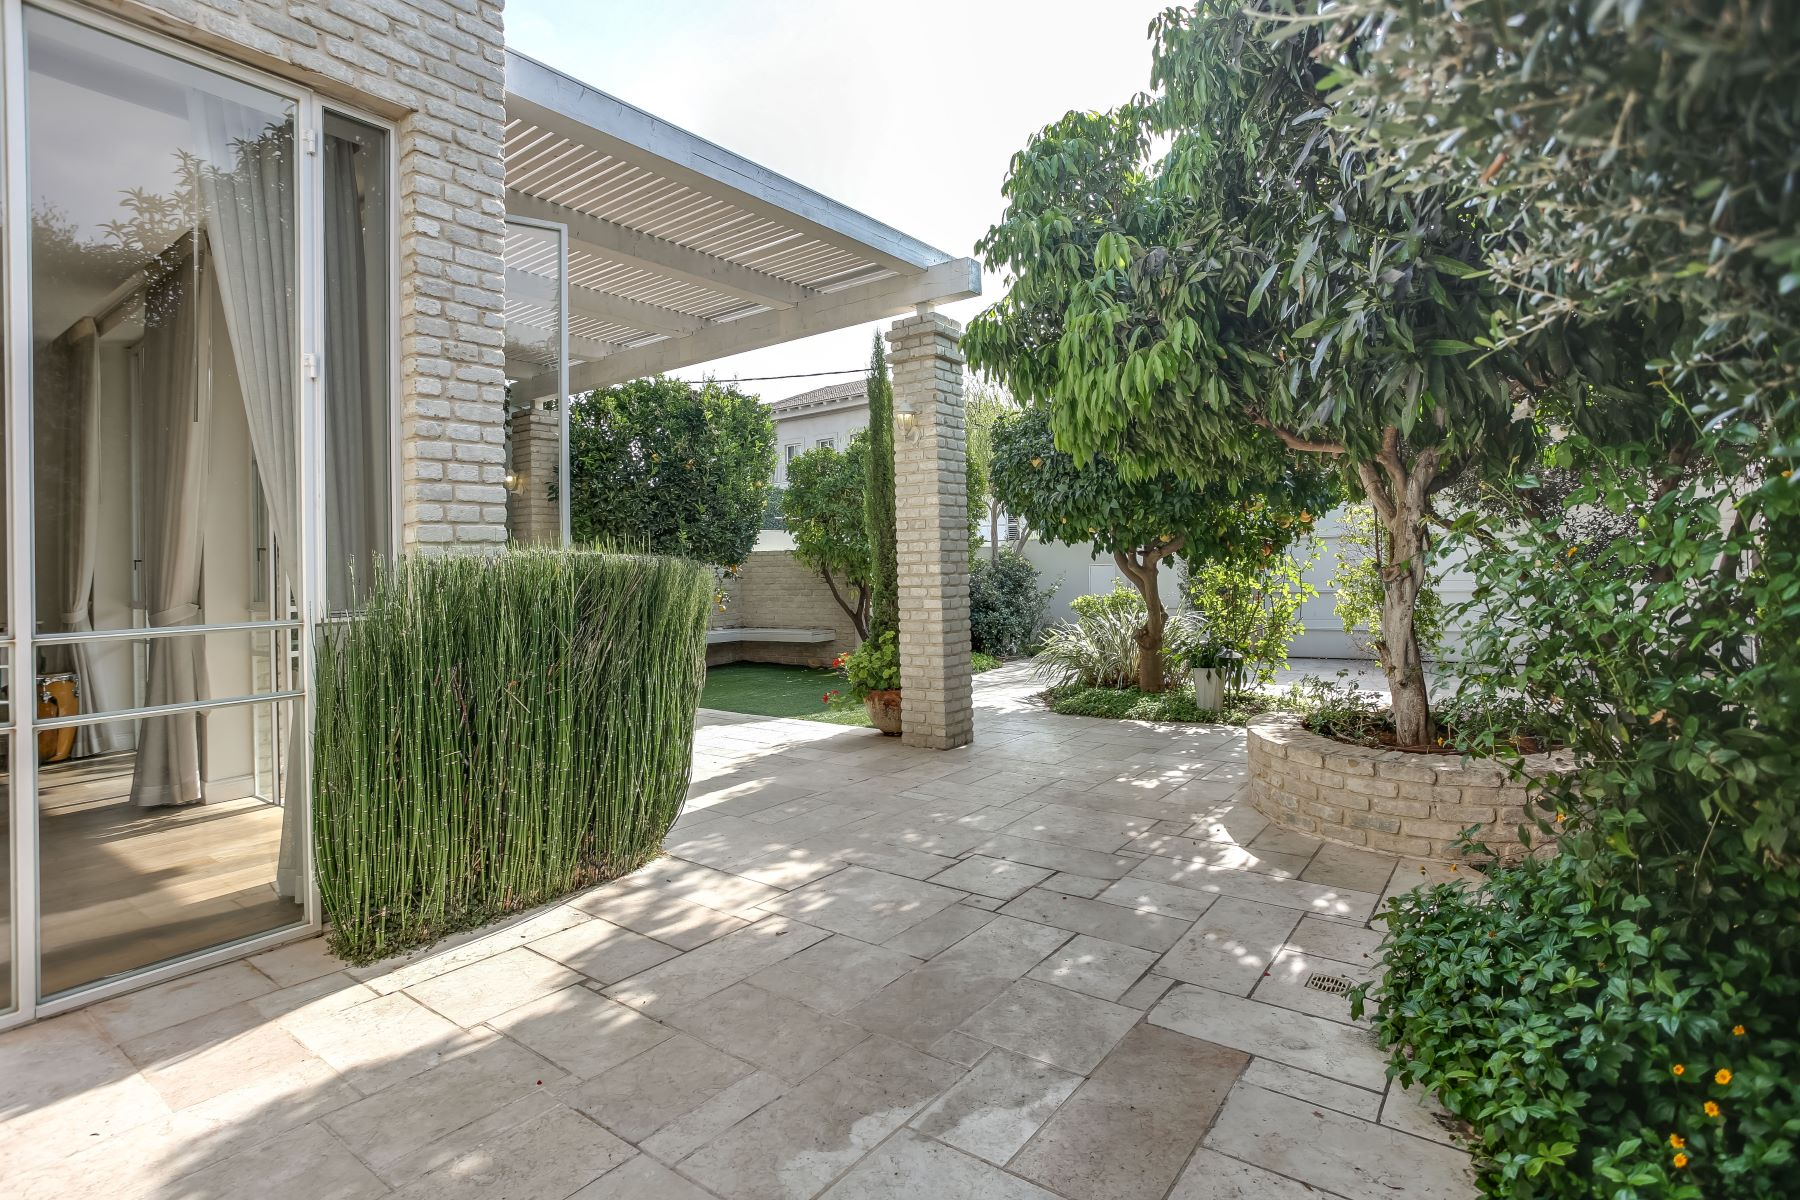 Single Family Home for Sale at Modern architecturally designed villa in Raanana. Ra'anana, Israel Israel